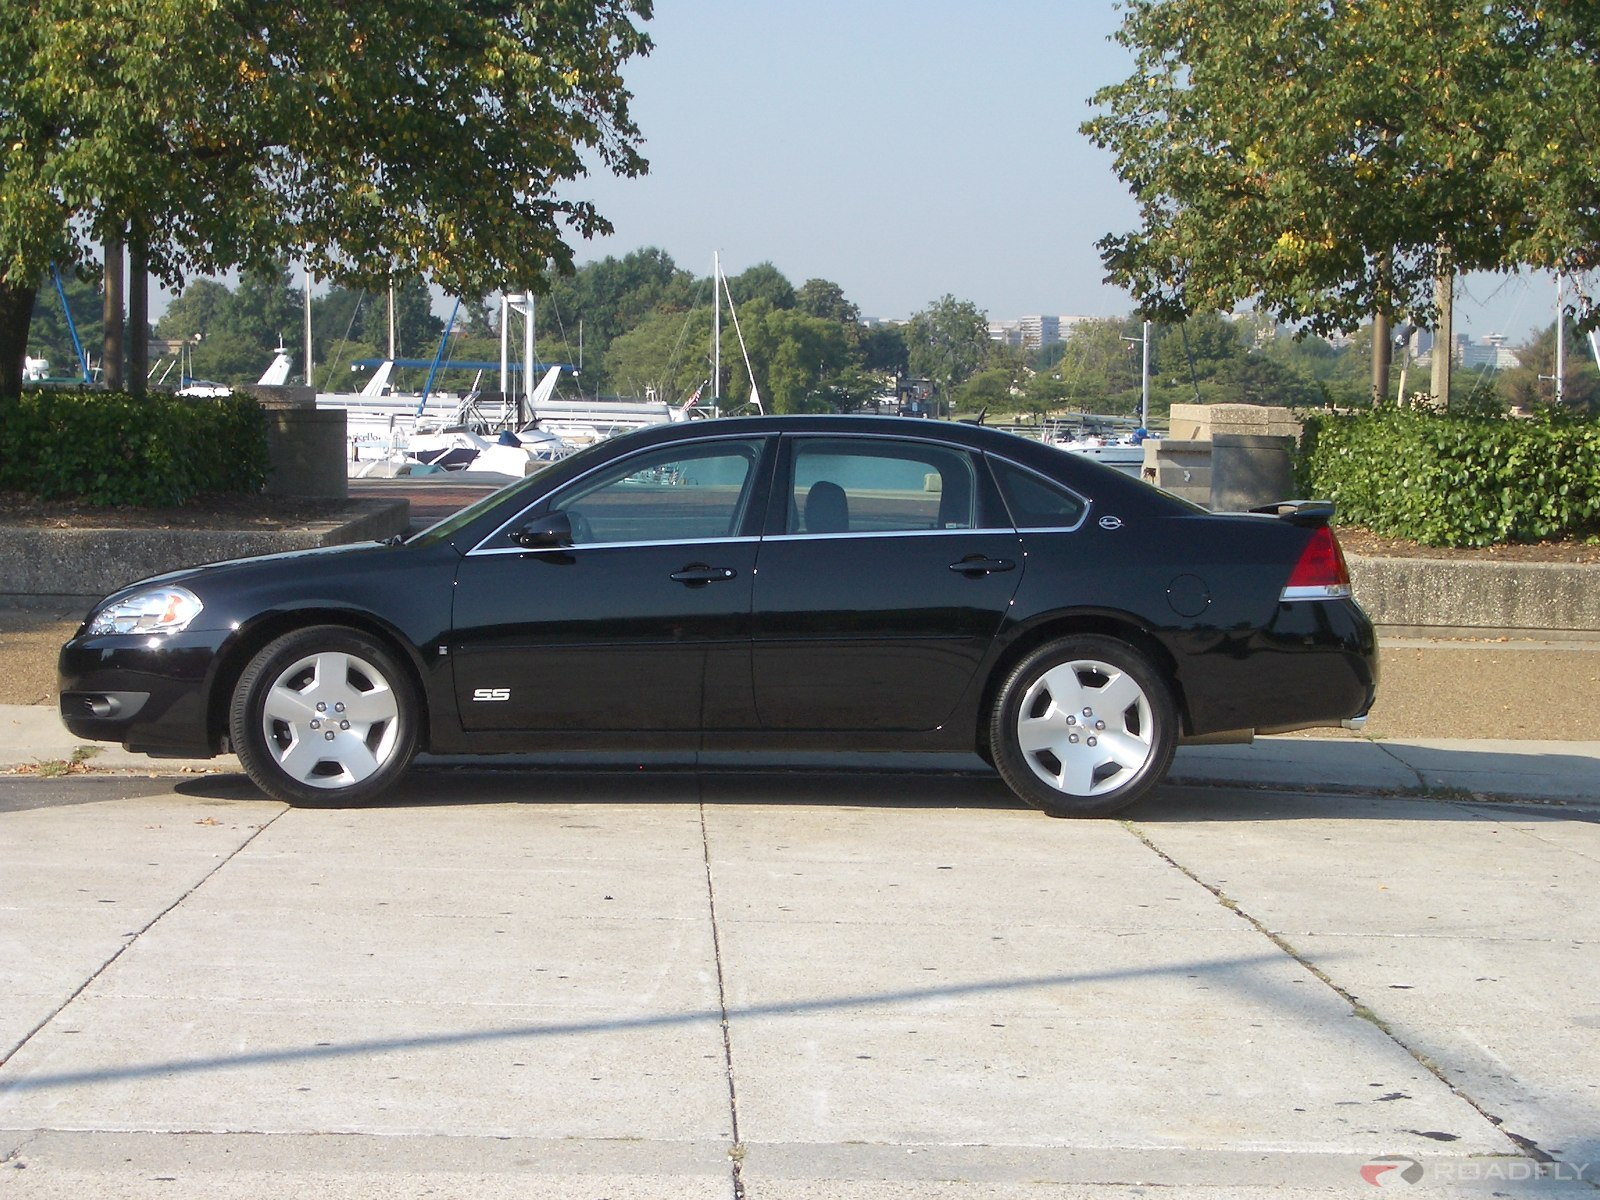 2009 chevrolet impala pictures cargurus. Black Bedroom Furniture Sets. Home Design Ideas